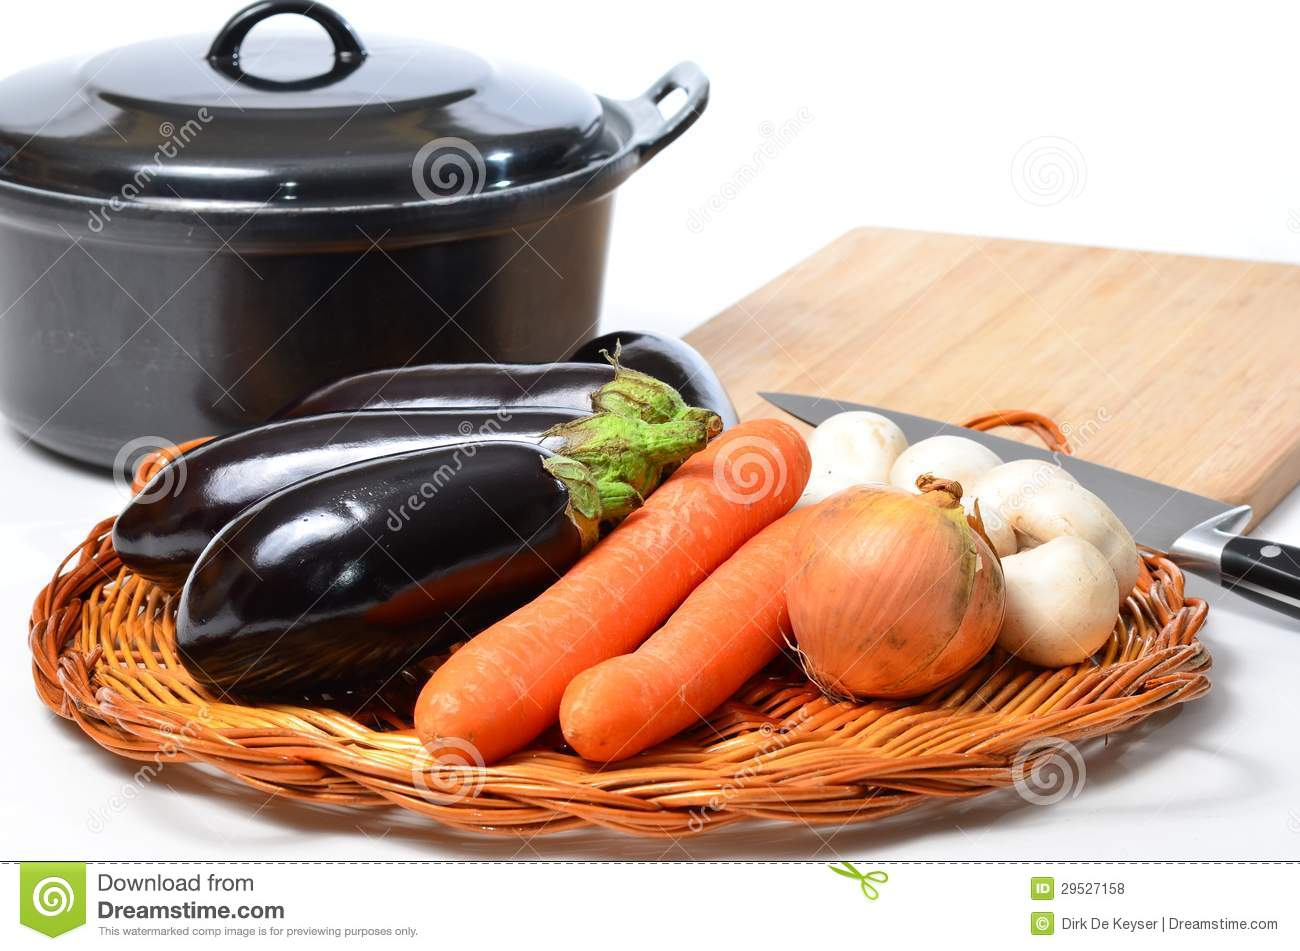 Vegatarian cooking with home grown vegetables